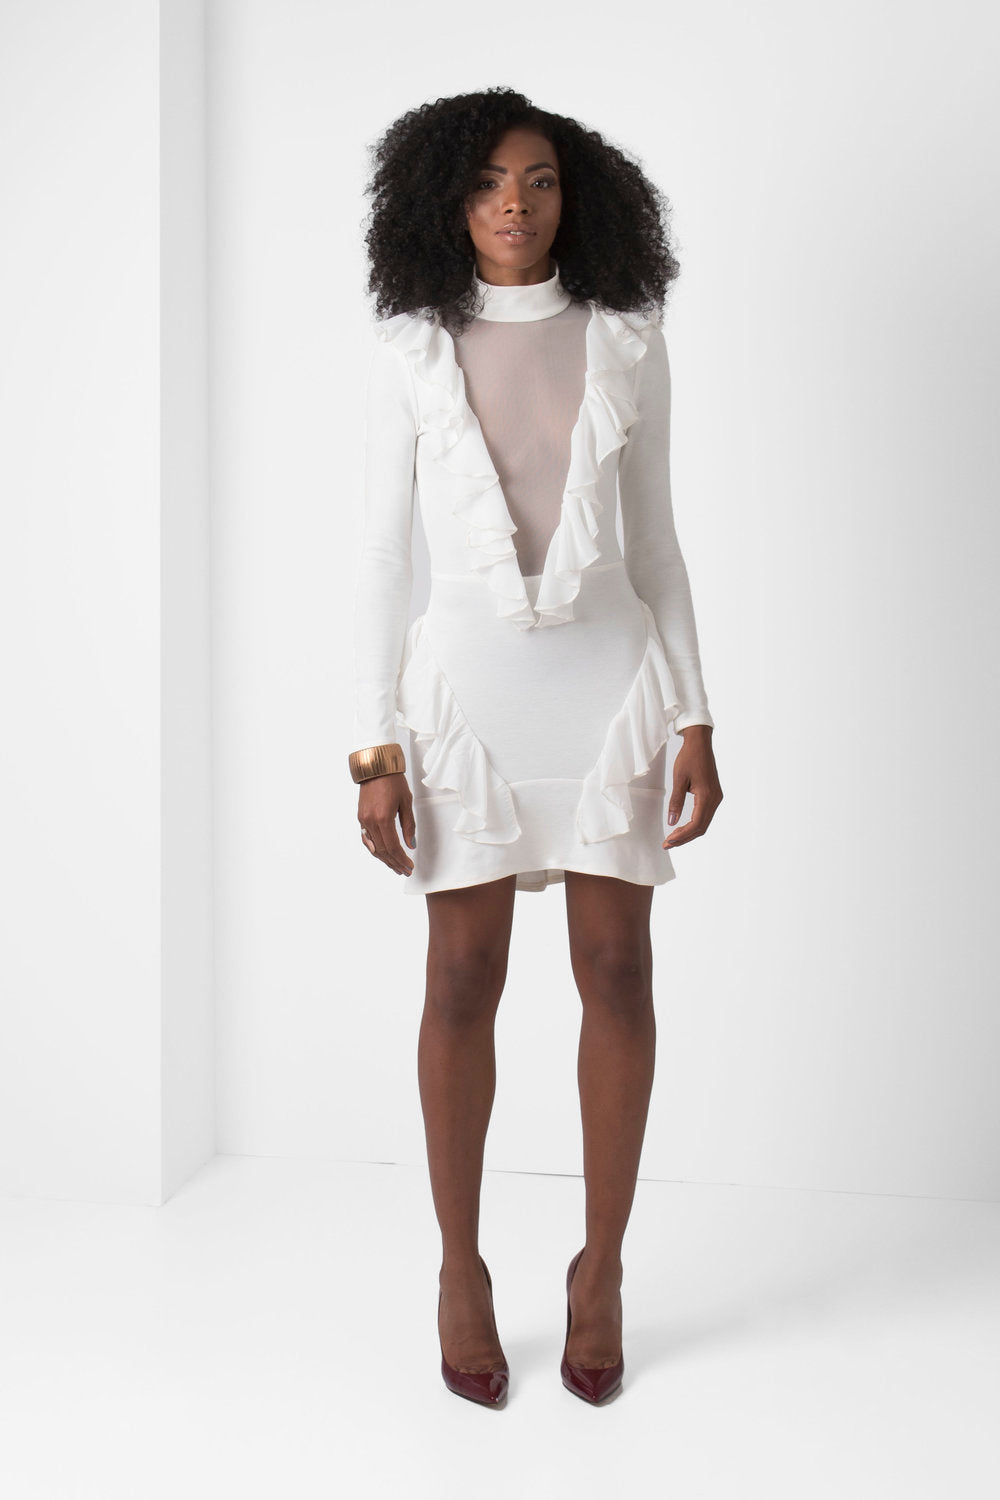 Off-White Long Sleeve Mini Dress Deep-V Mesh Ruffle Detail - pacorogiene